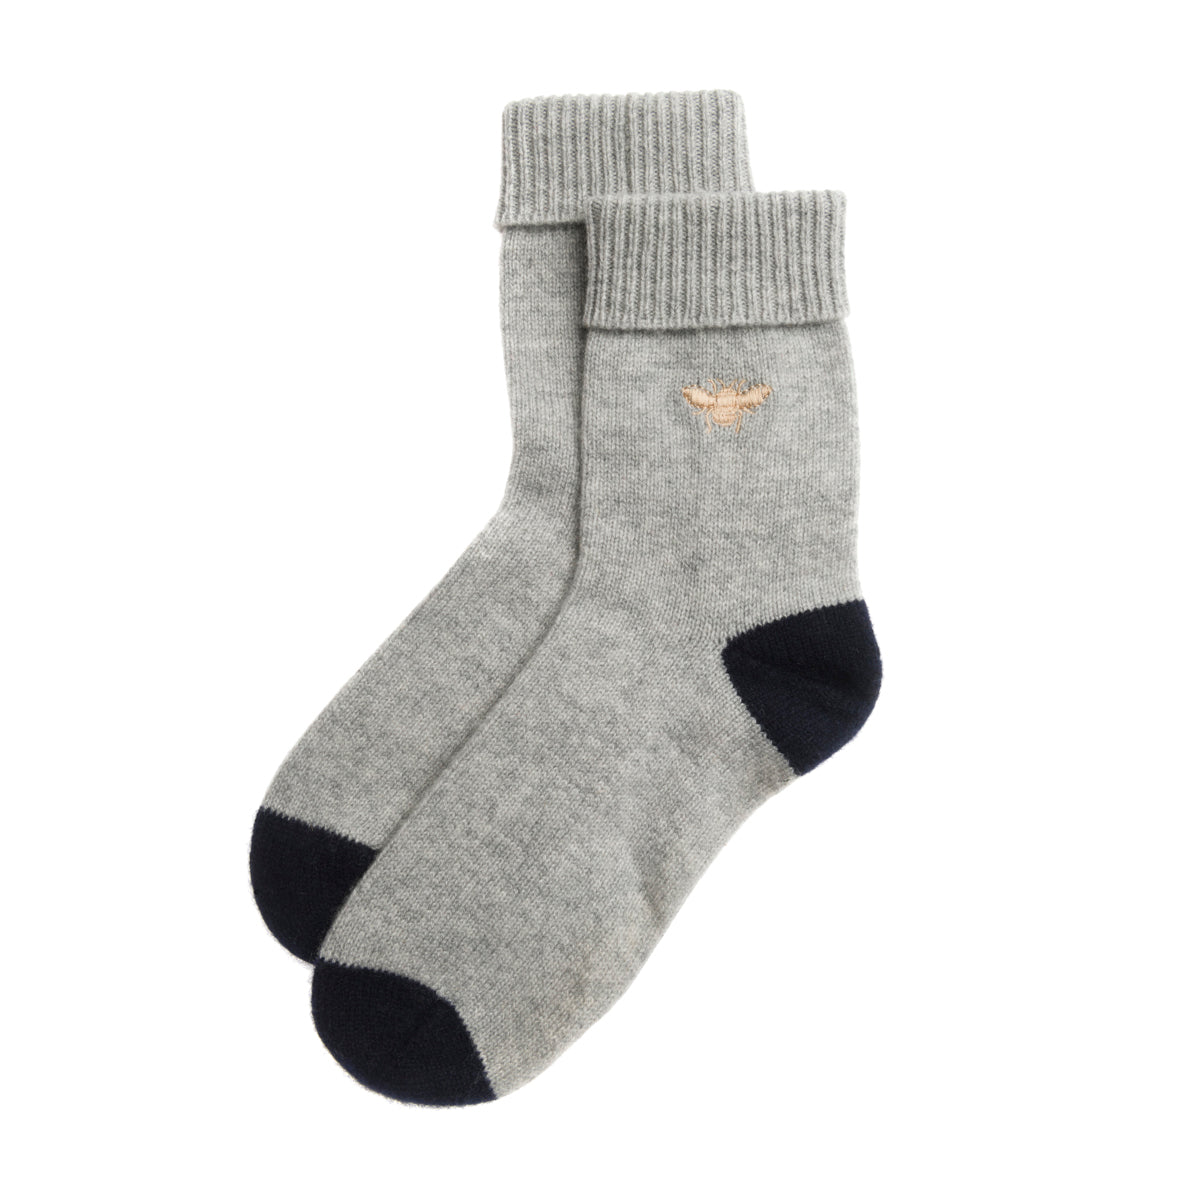 Bees Cashmere Socks